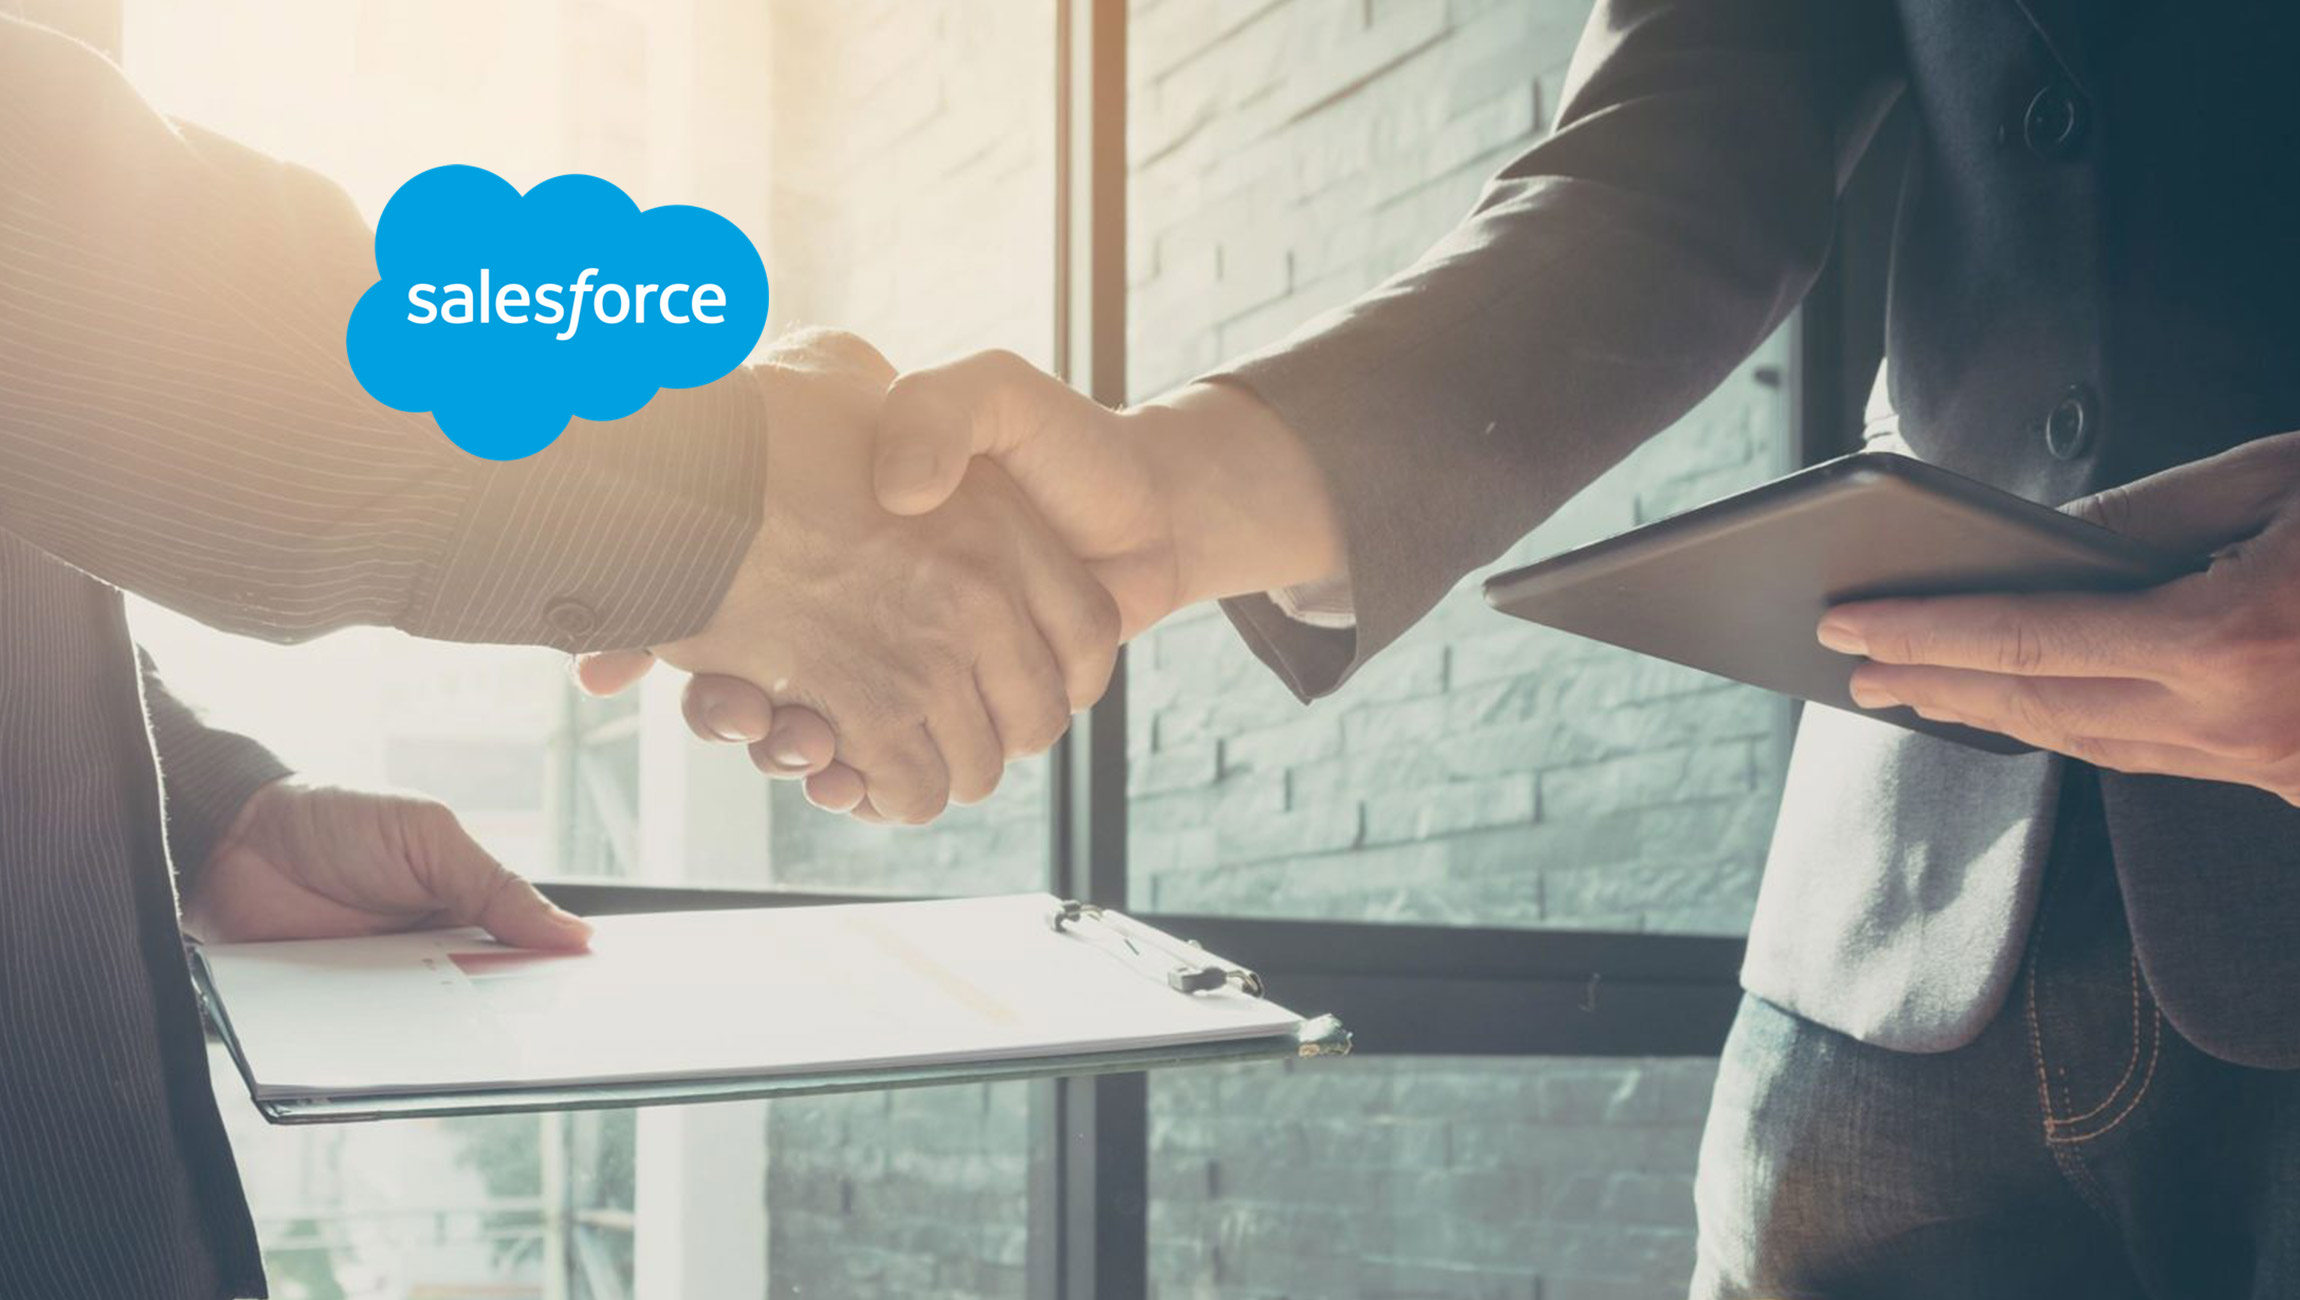 Salesforce Signs Definitive Agreement to Acquire Slack 6